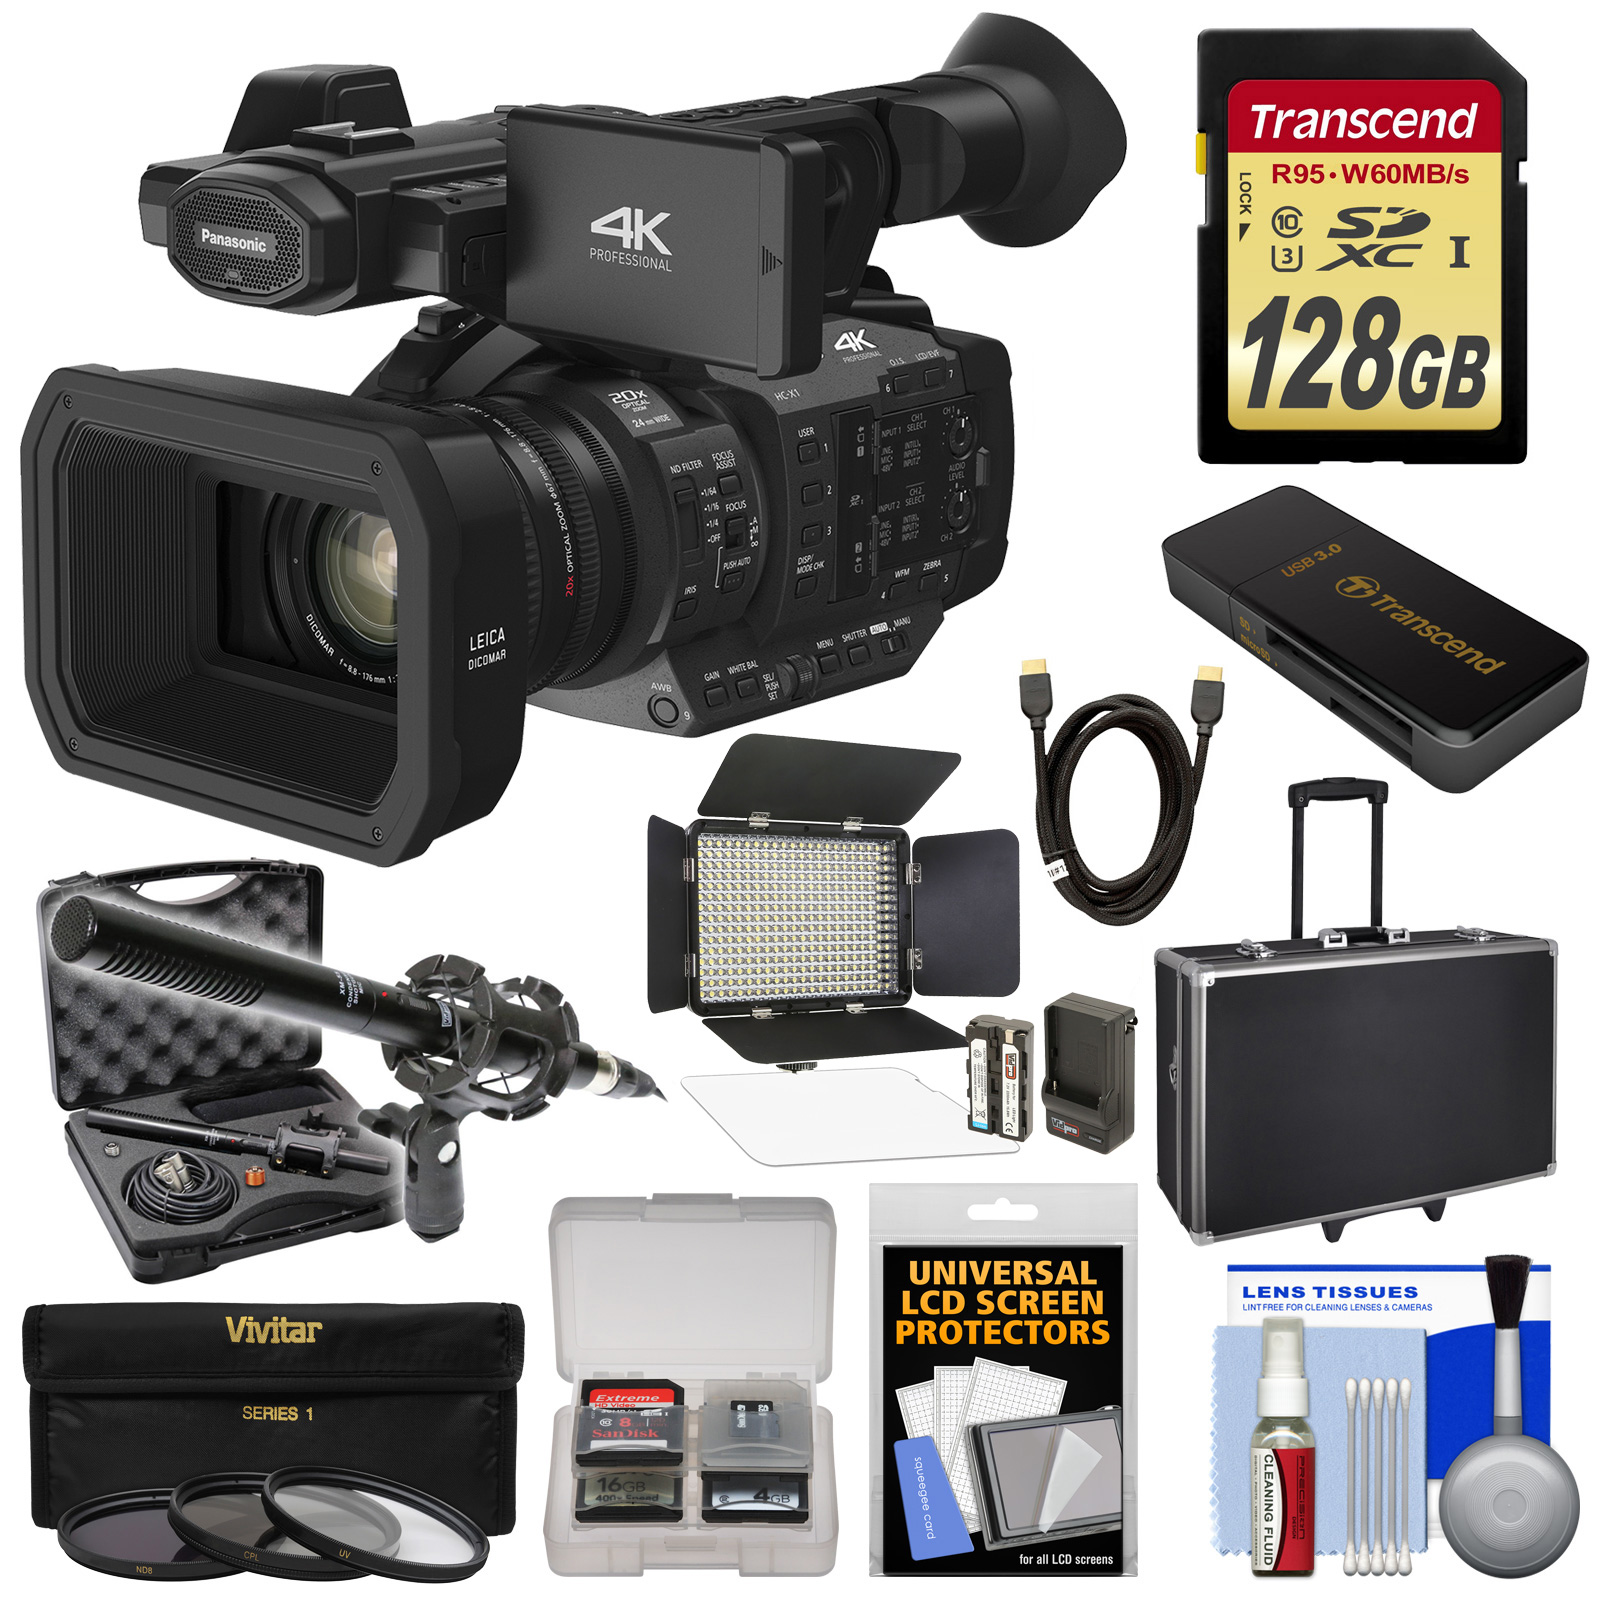 Panasonic HC-X1 4K Ultra HD Video Camera Camcorder with 128GB Card + LED Video Light + Microphone + Hard Case... by Panasonic